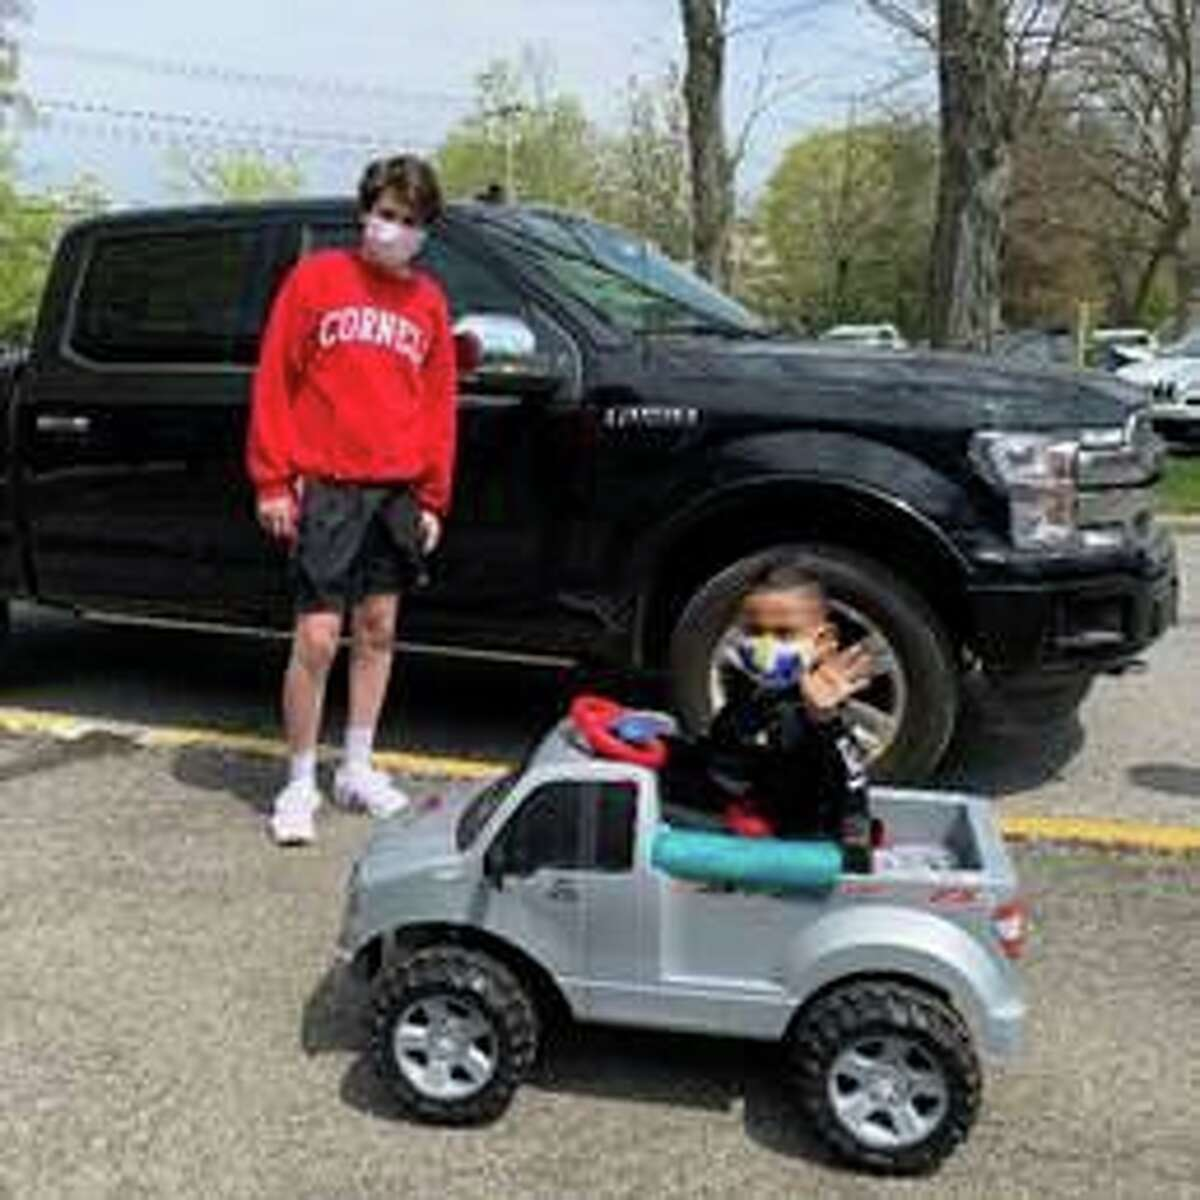 Leo Rosen, a resident of Purchase, N.Y., presents an F-150 retrofitted tiny truck to a 4-year-old student with special needs.